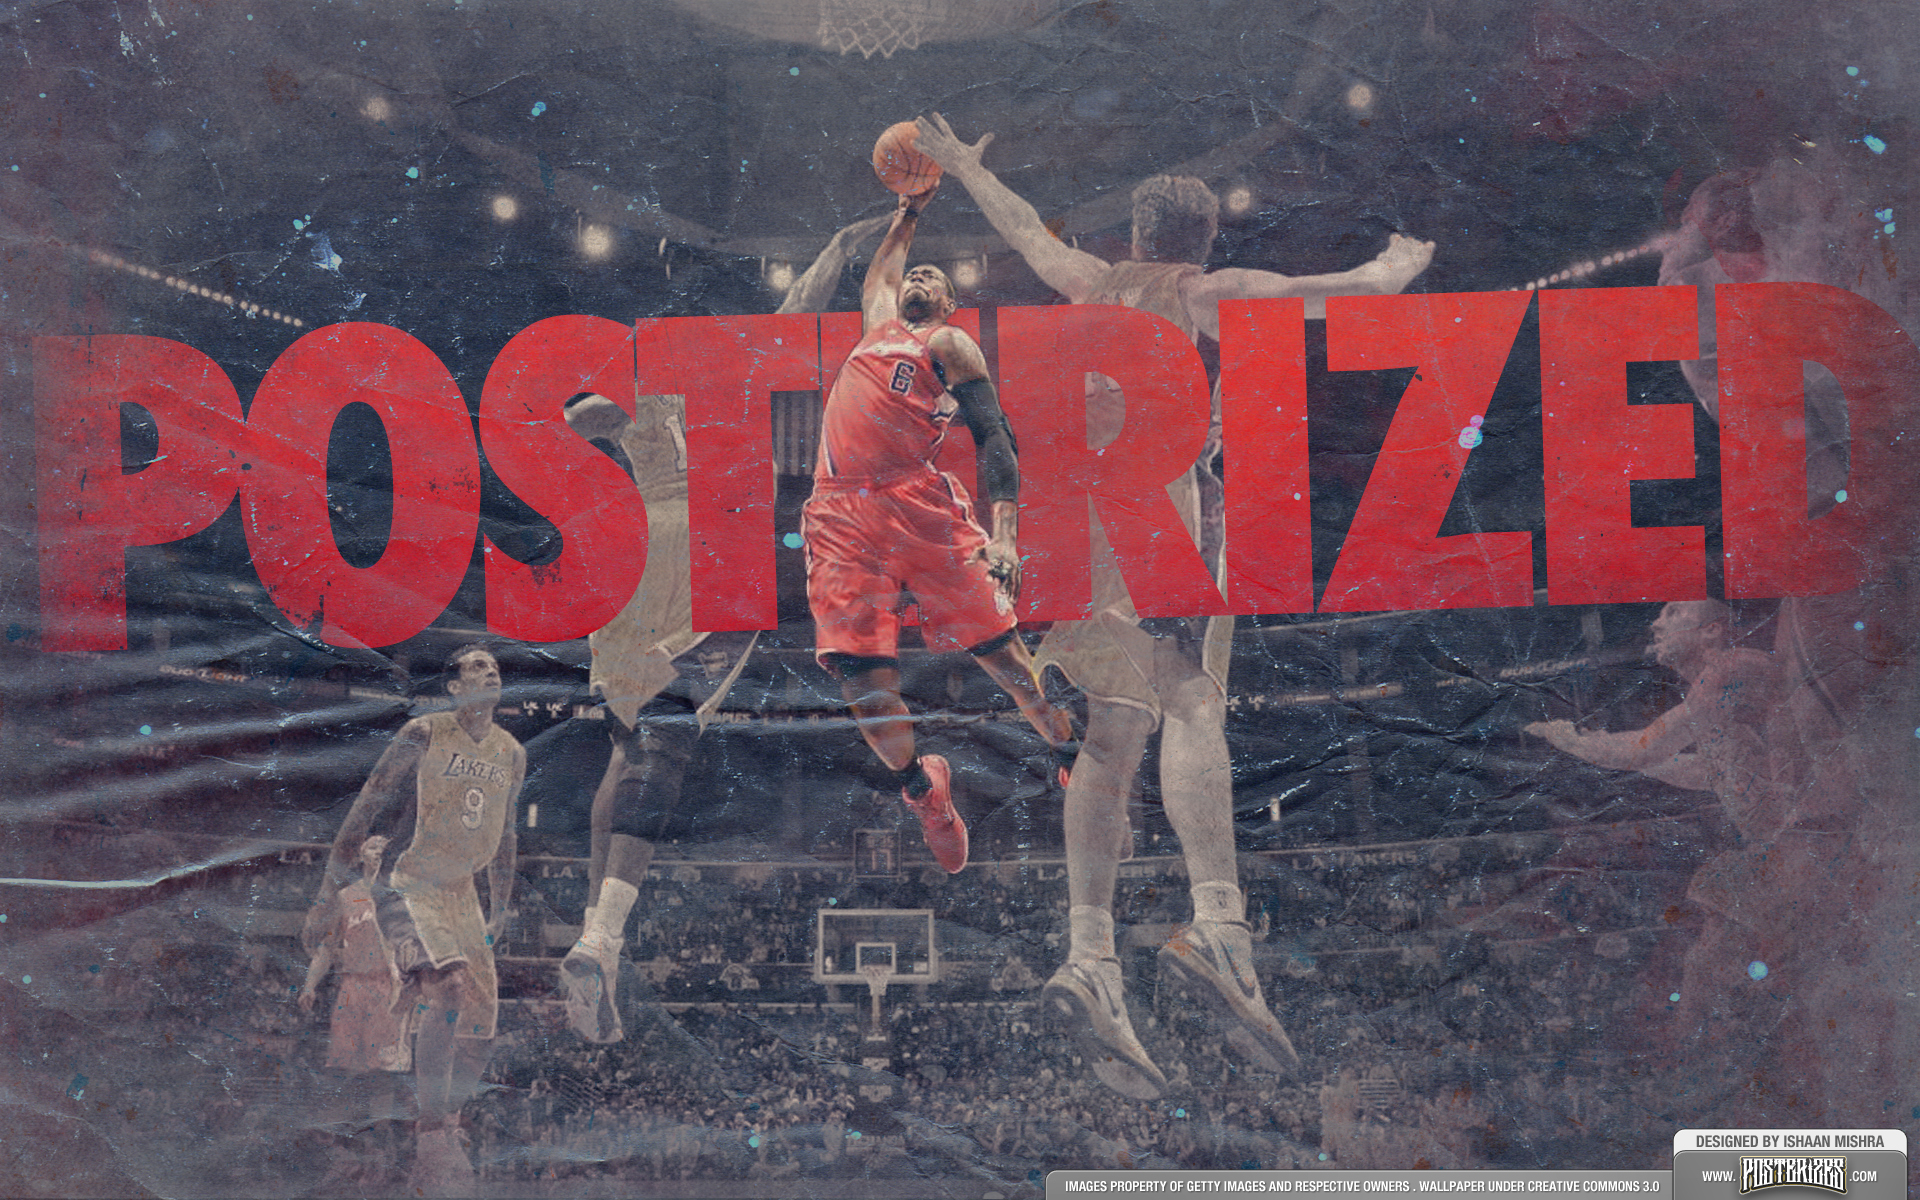 deandre jordan posterization wallpaper by ishaanmishra on